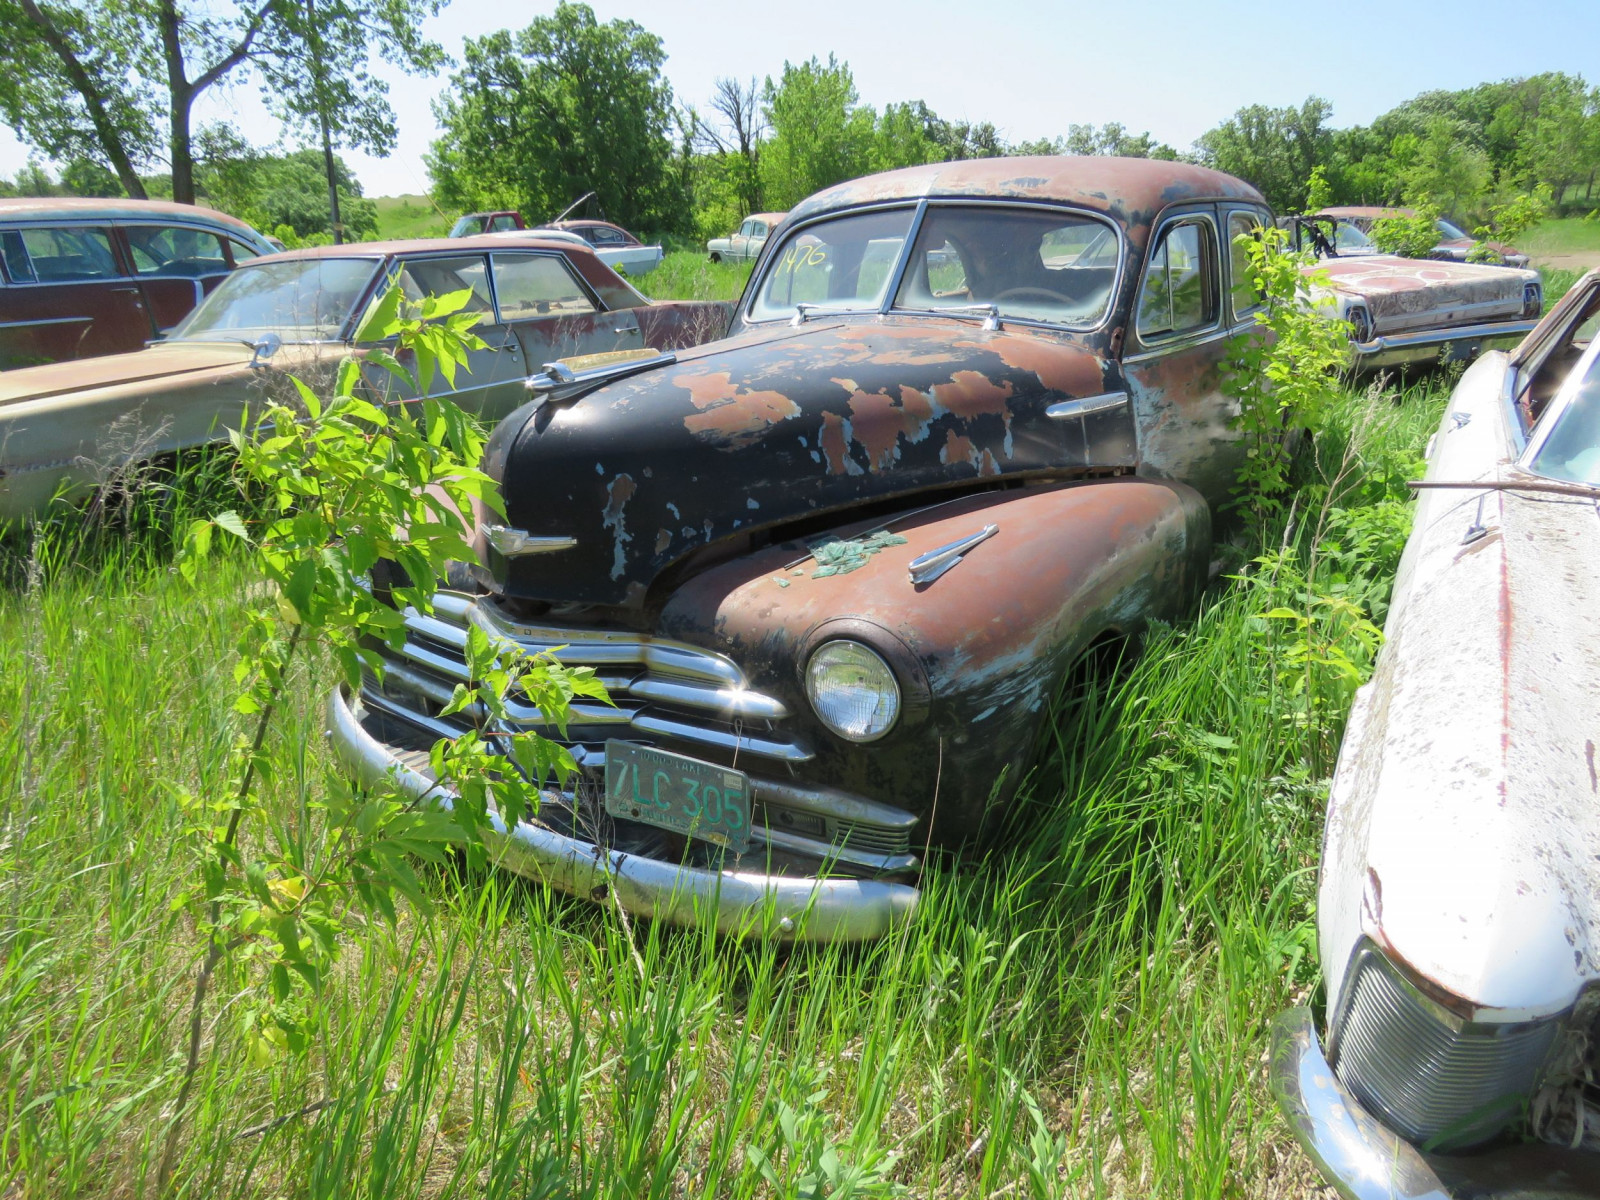 1947 Chevrolet Fleet master 4dr Sedan for Project or parts - Image 2